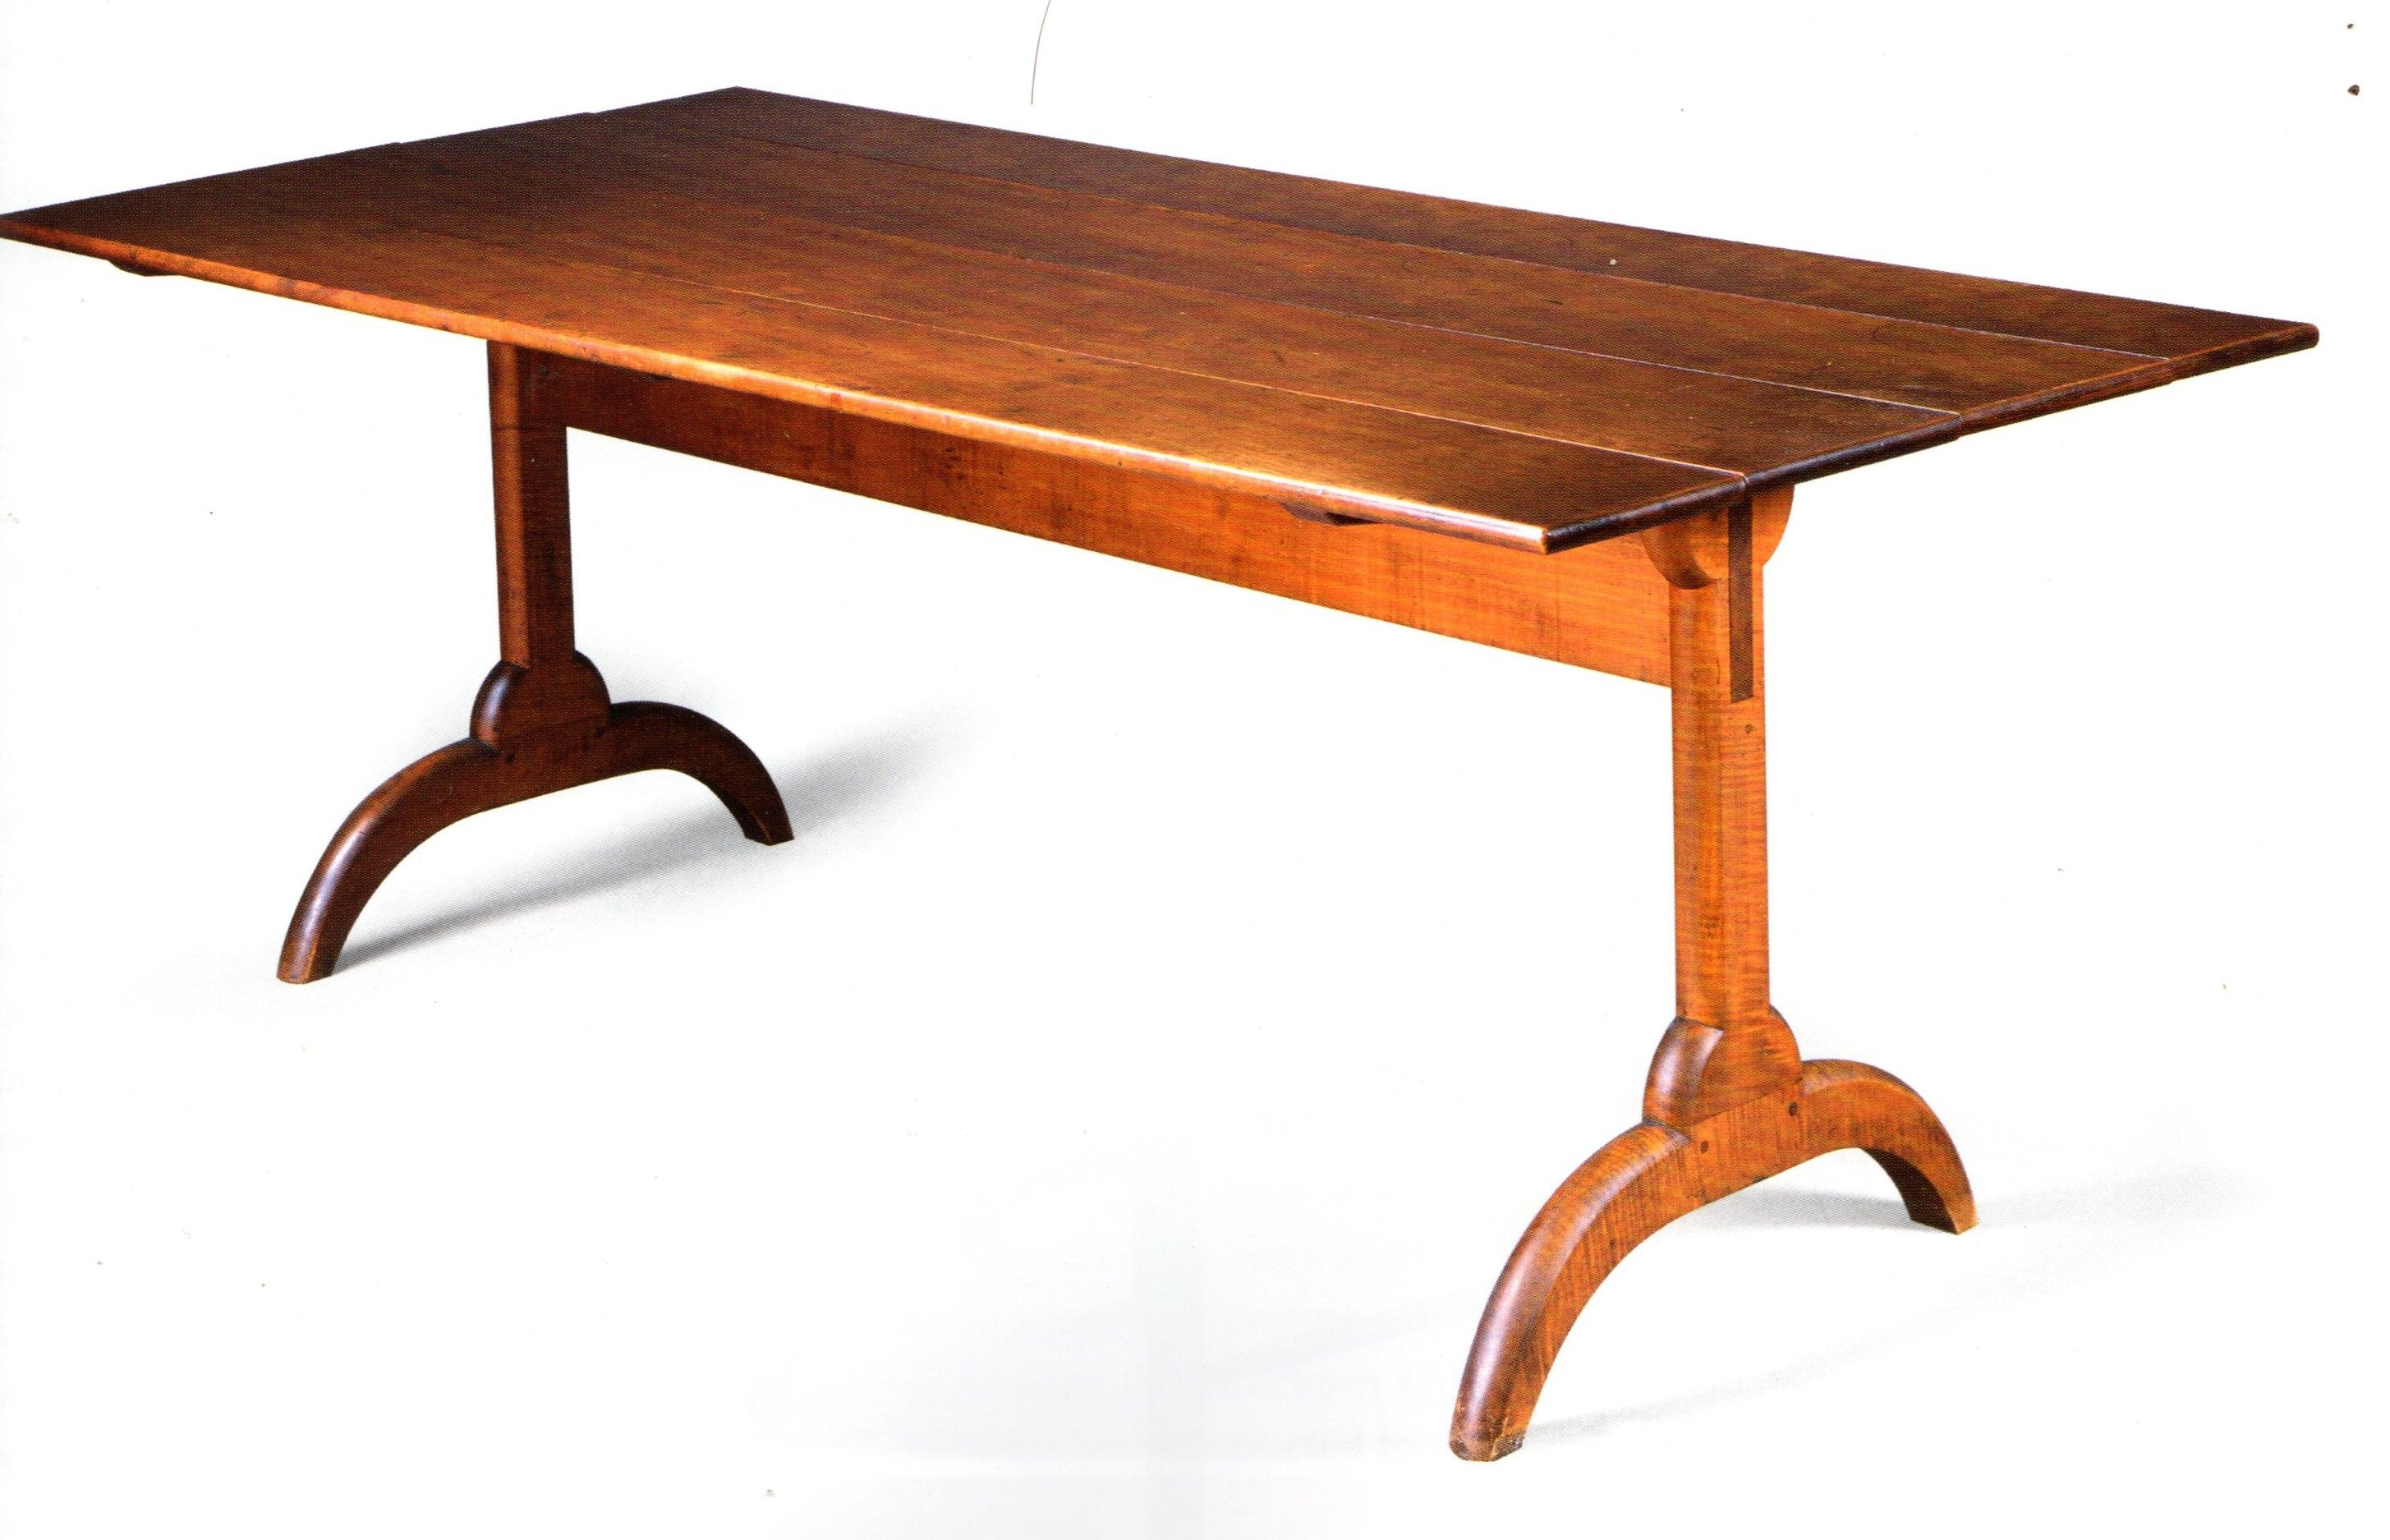 shaker trestle table 1830 cherry amp curly maple My Style  : e6876d8f8ac747fc42daf2b41ef9bac0 from www.pinterest.com size 2910 x 1875 jpeg 640kB